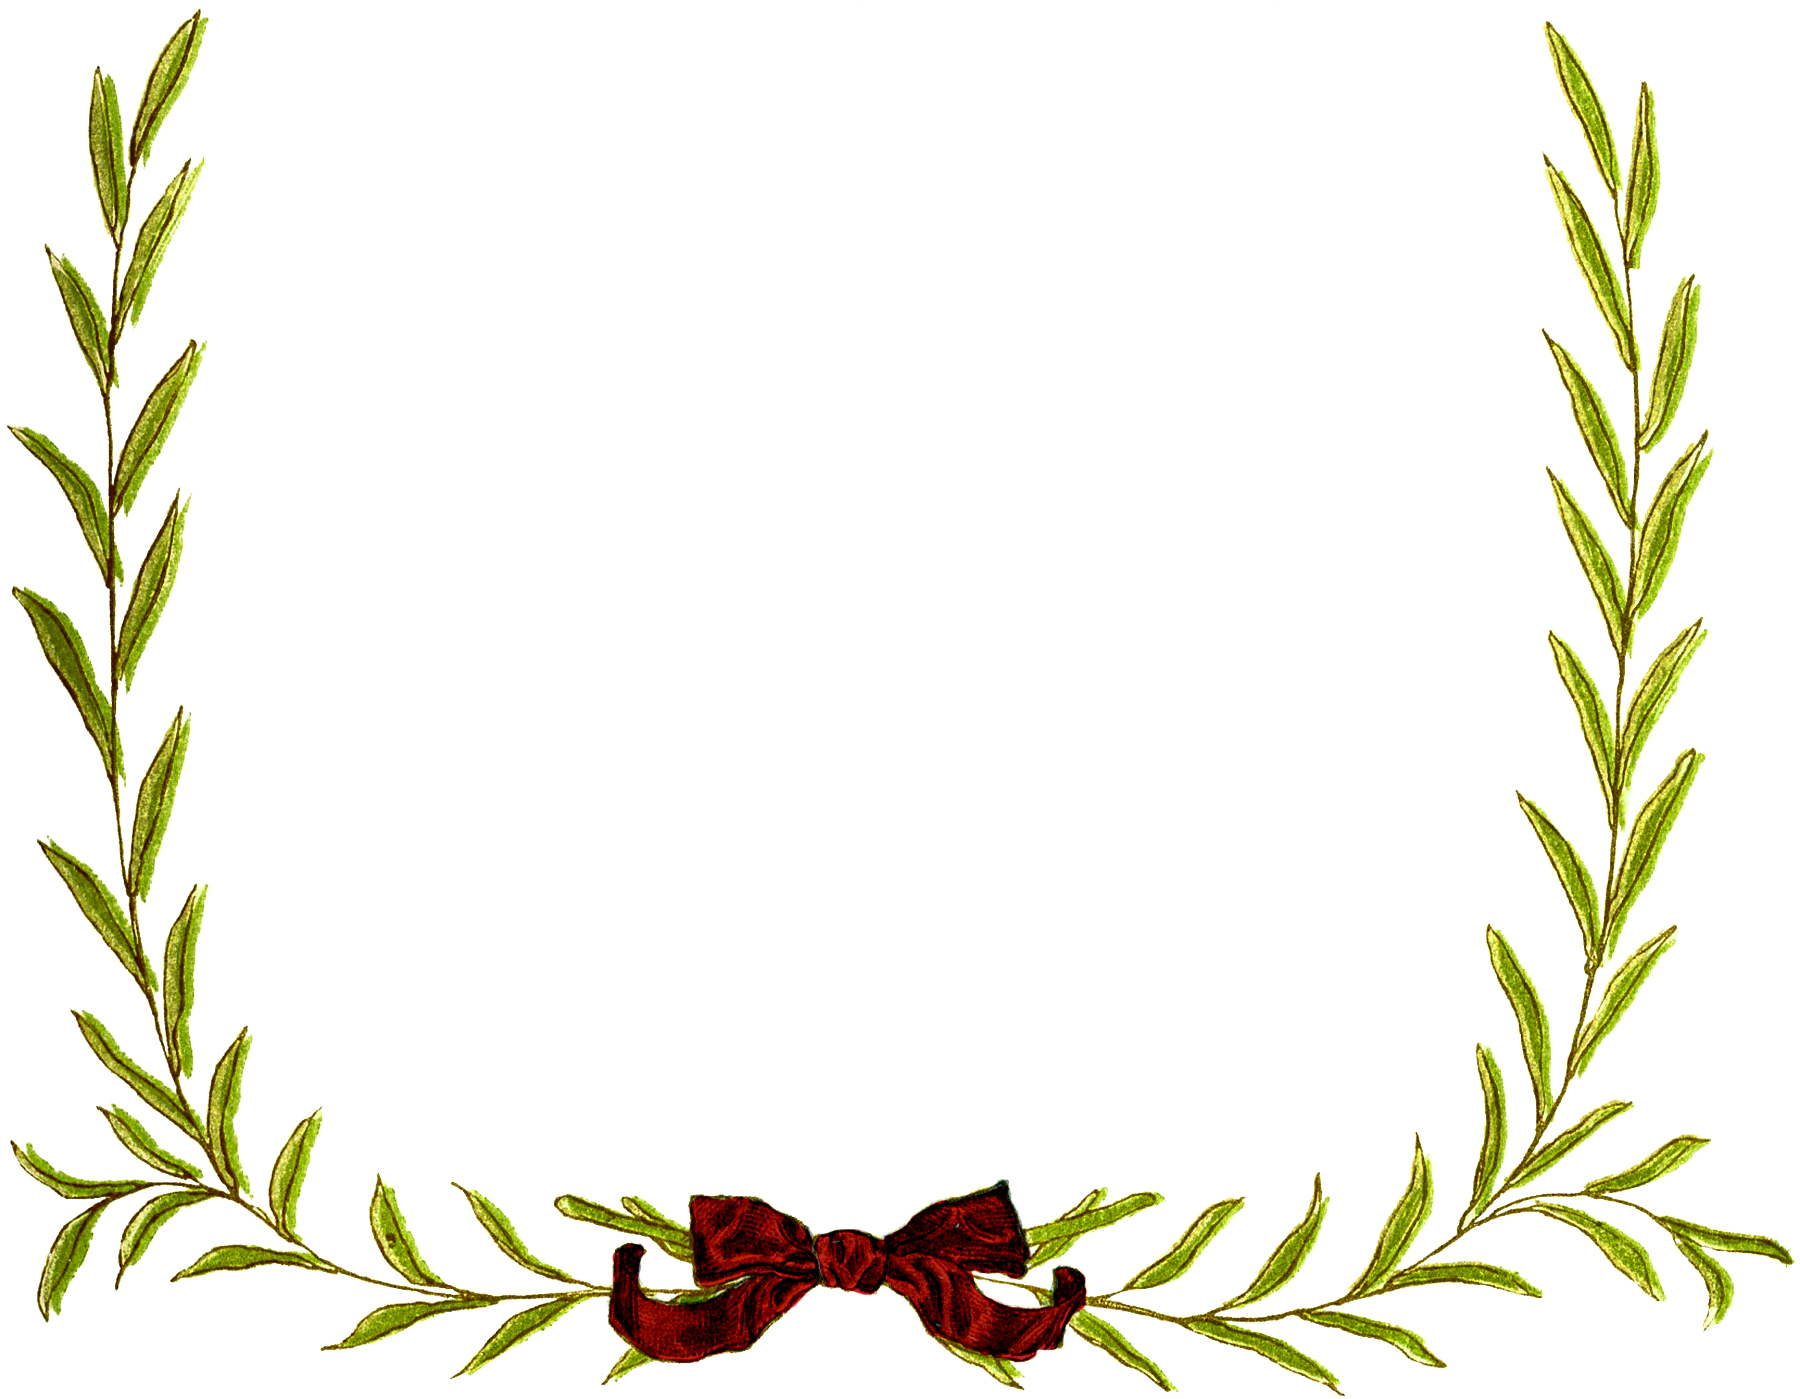 Simple Christmas Wreath Frame Images  The Graphics Fairy